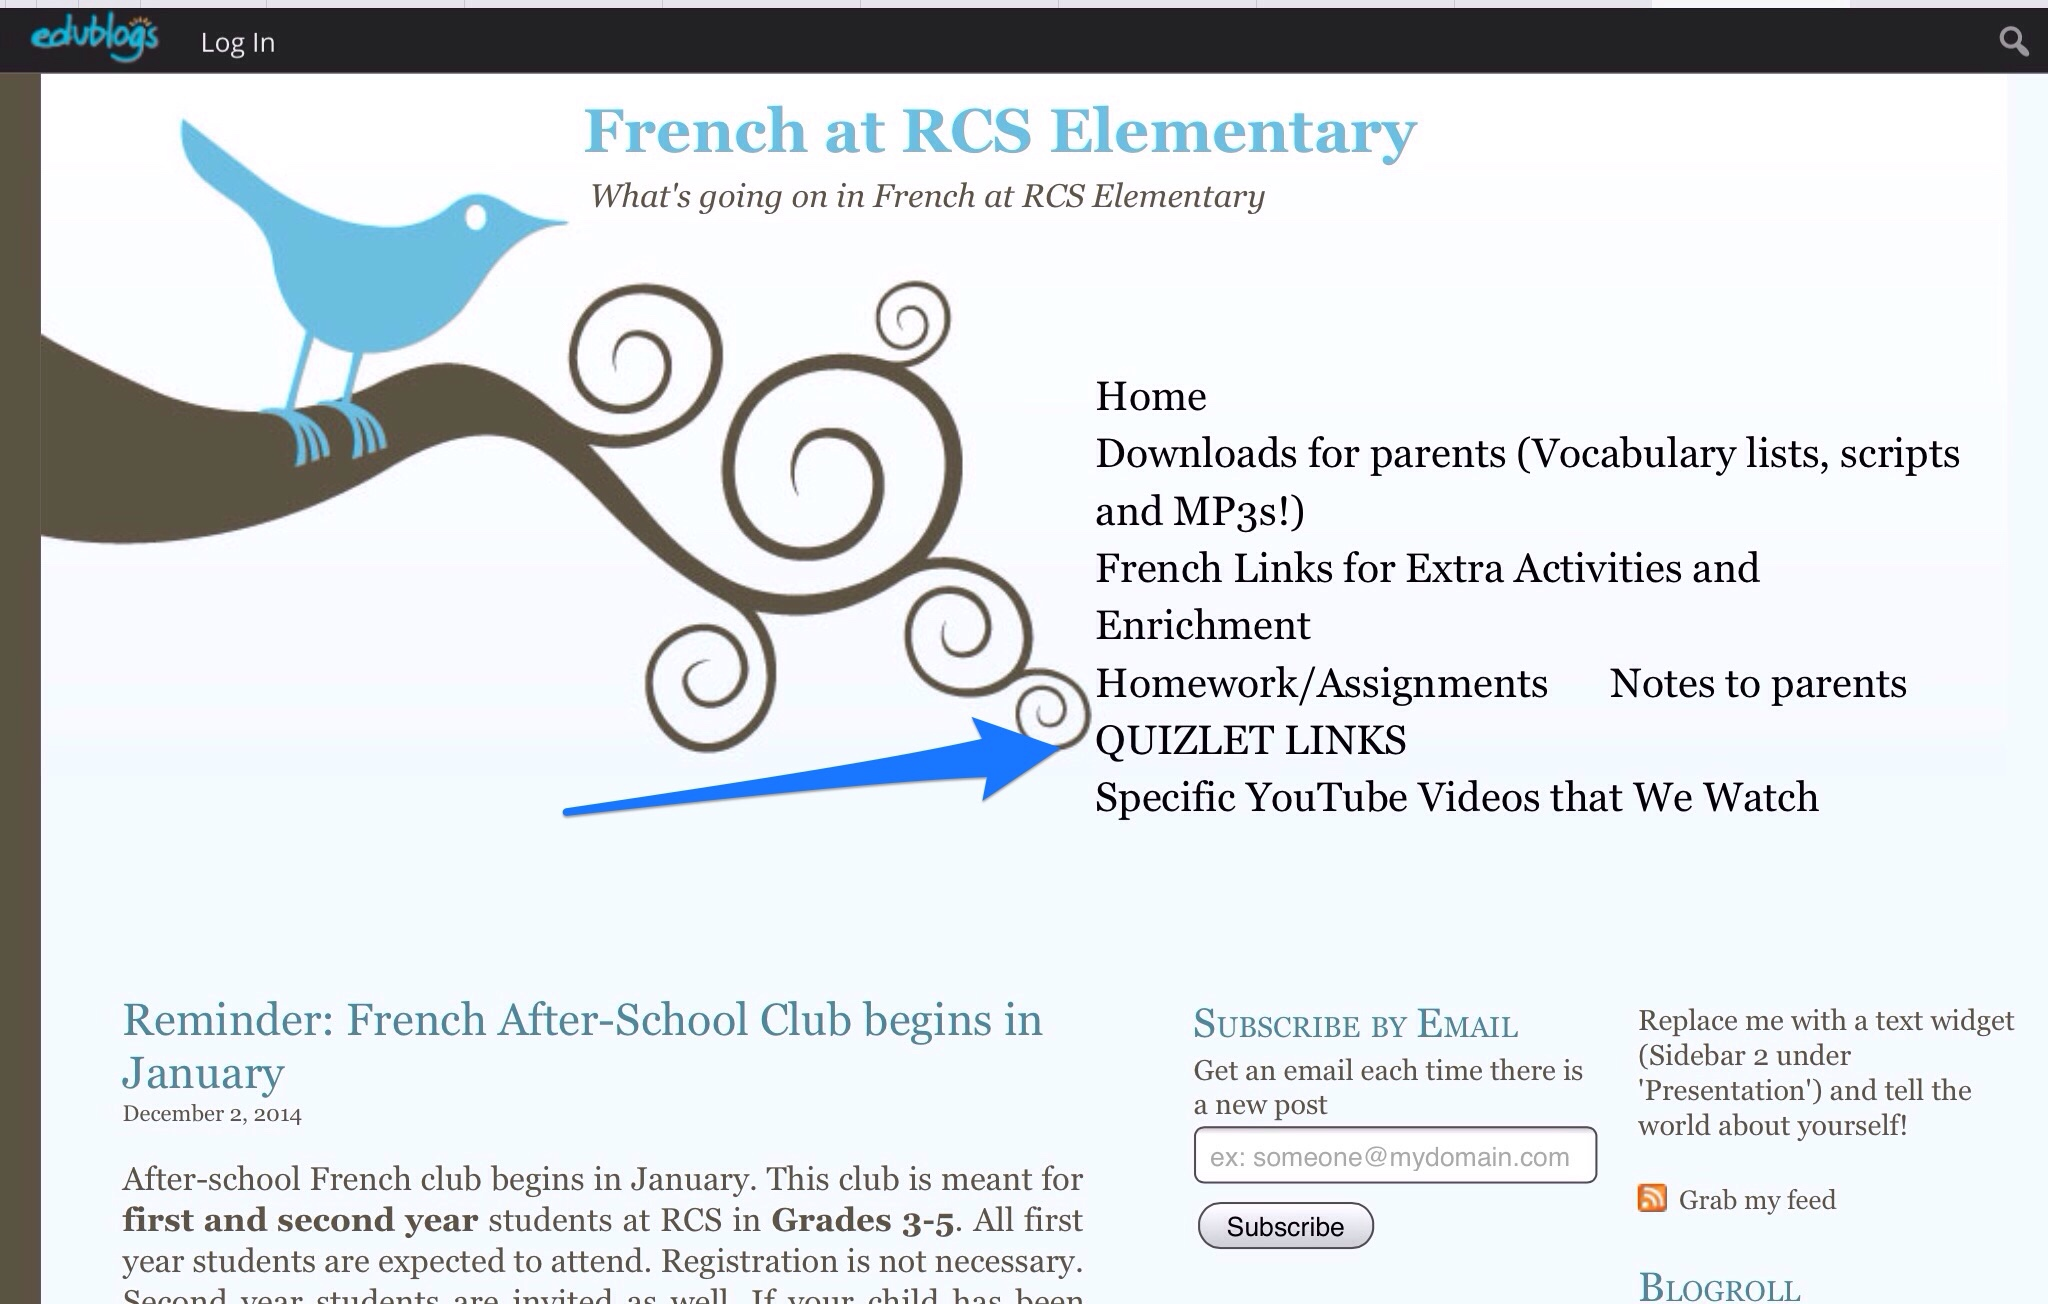 How to Sign up for Quizlet | French at RCS Elementary